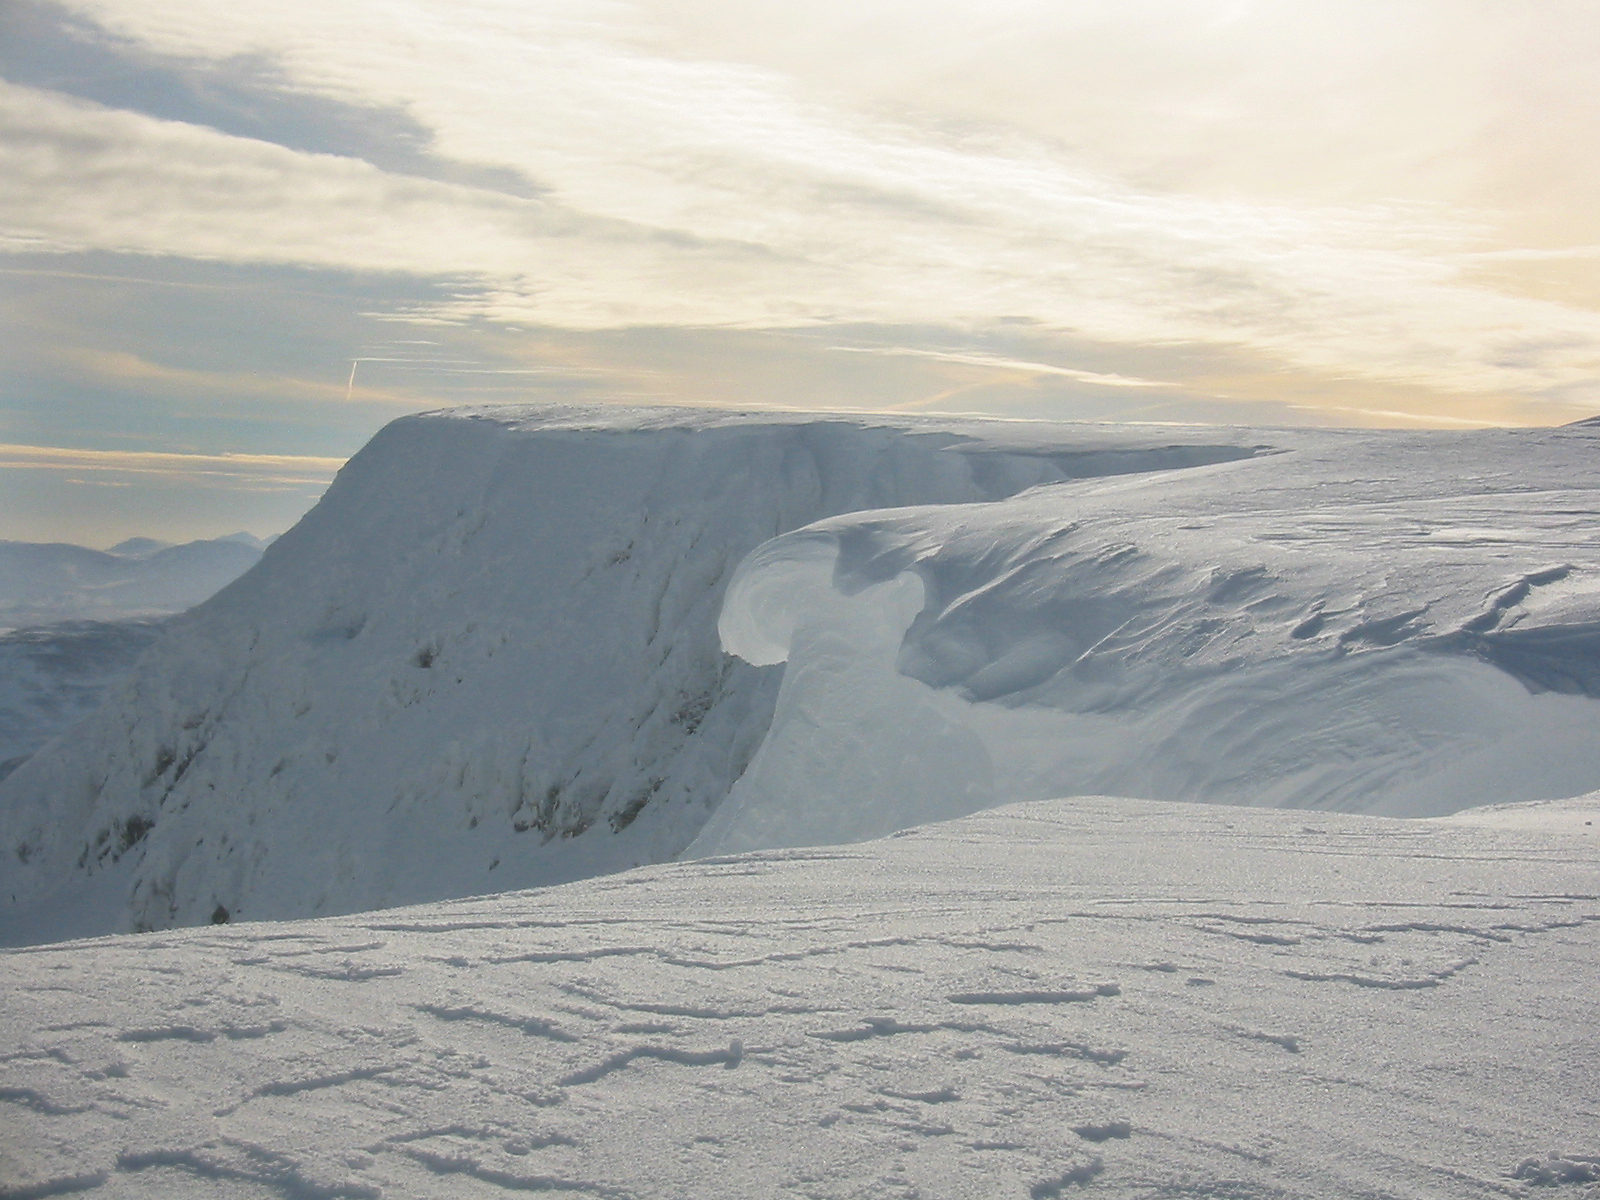 Beware of cornices on leeward sides of ridges